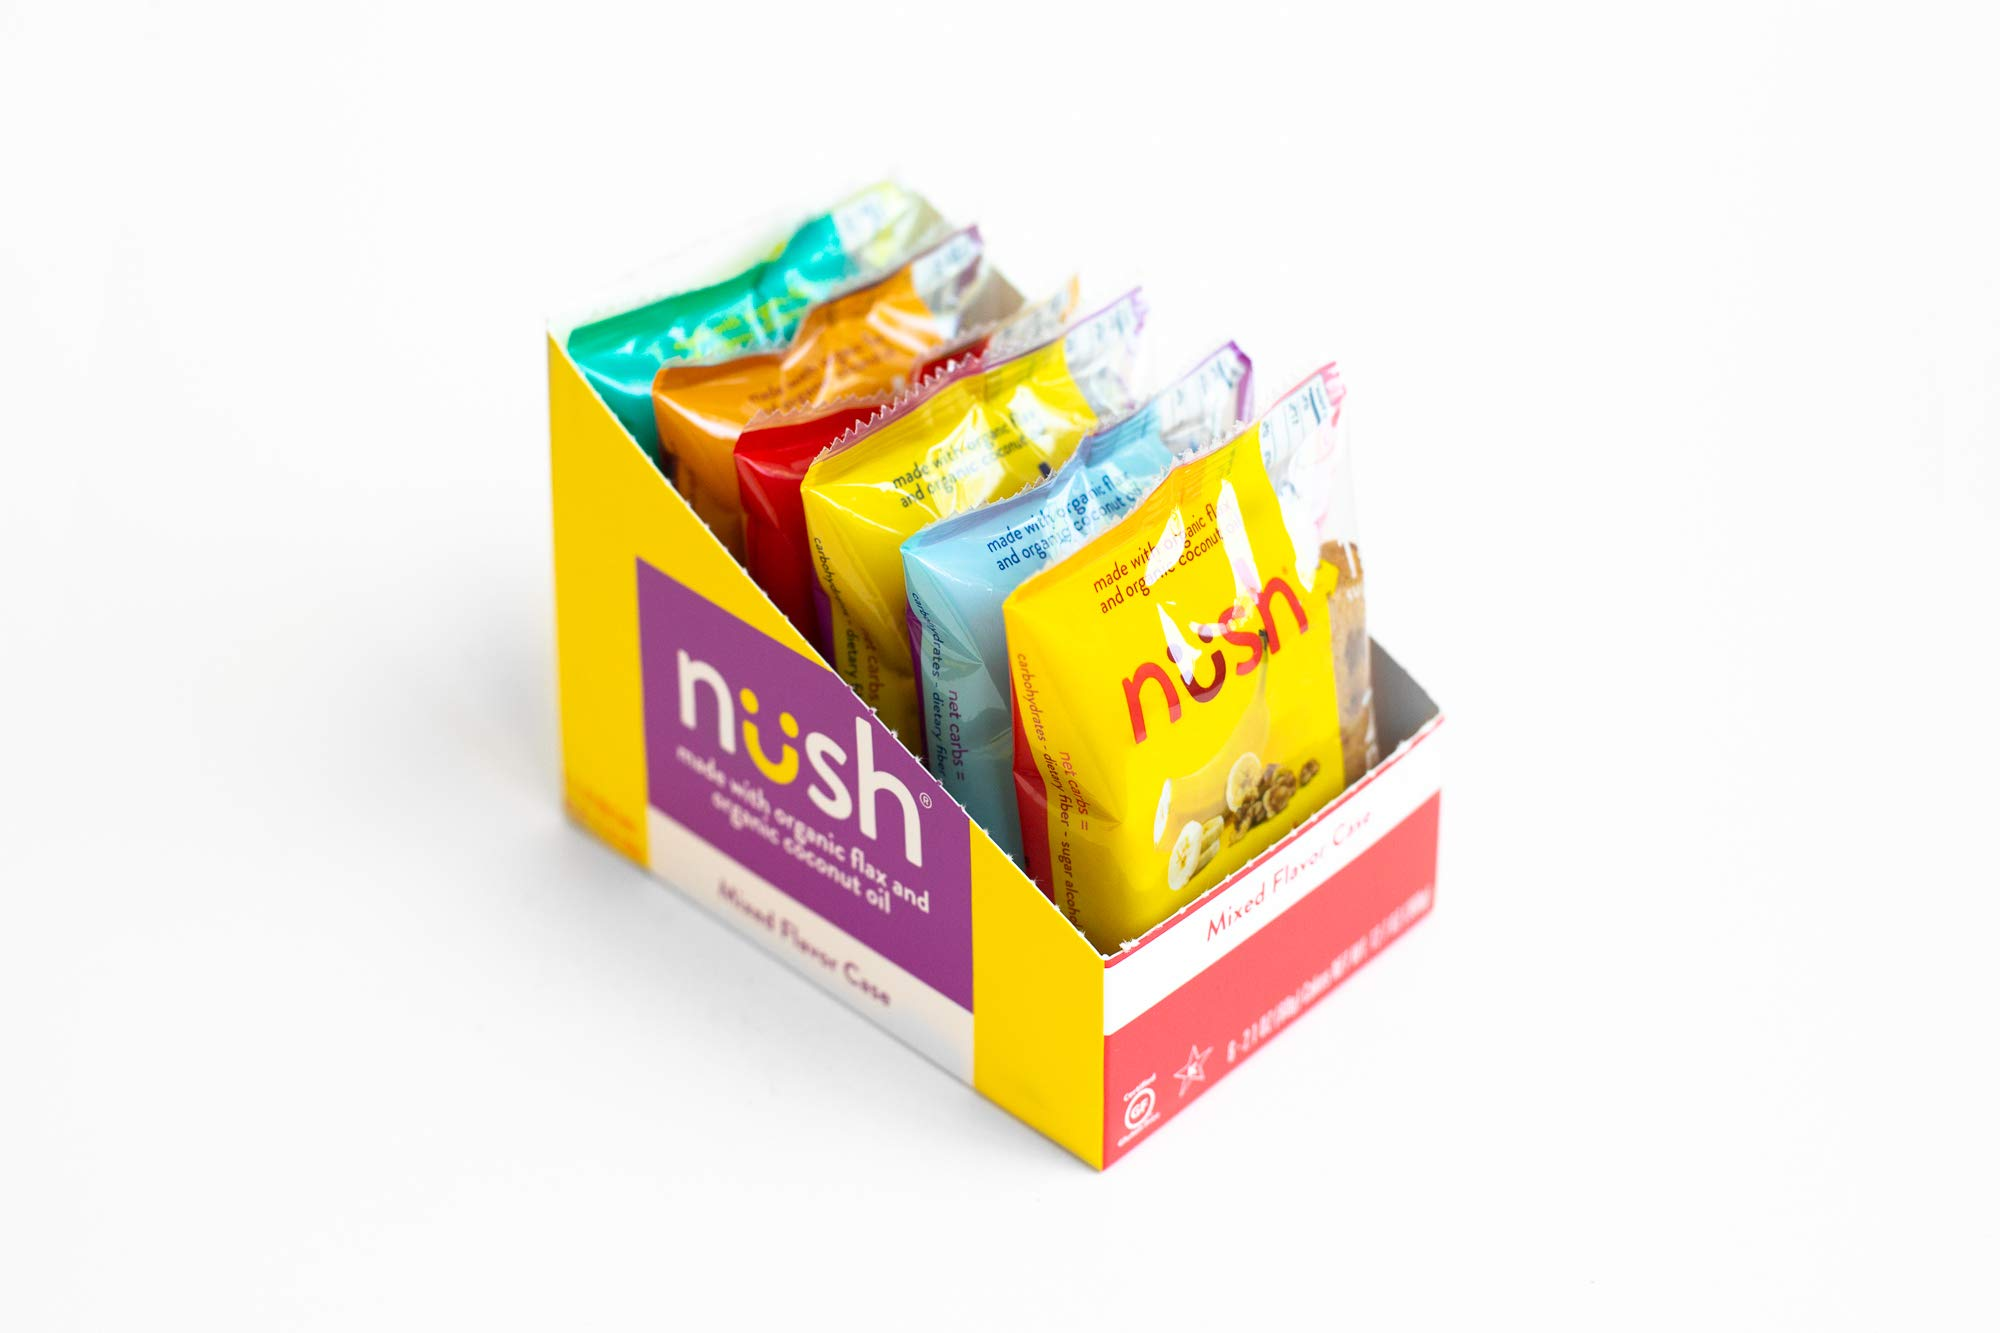 Low Carb Keto Snack Cakes (Flax-Based) - Mixed Flavor Case (6 Cakes) - Gluten Free, Soy Free, Organic, No Sugar Added - Great for Ketogenic, Low-Carb, Atkins, and Low-Sugar Diets by Nush Foods